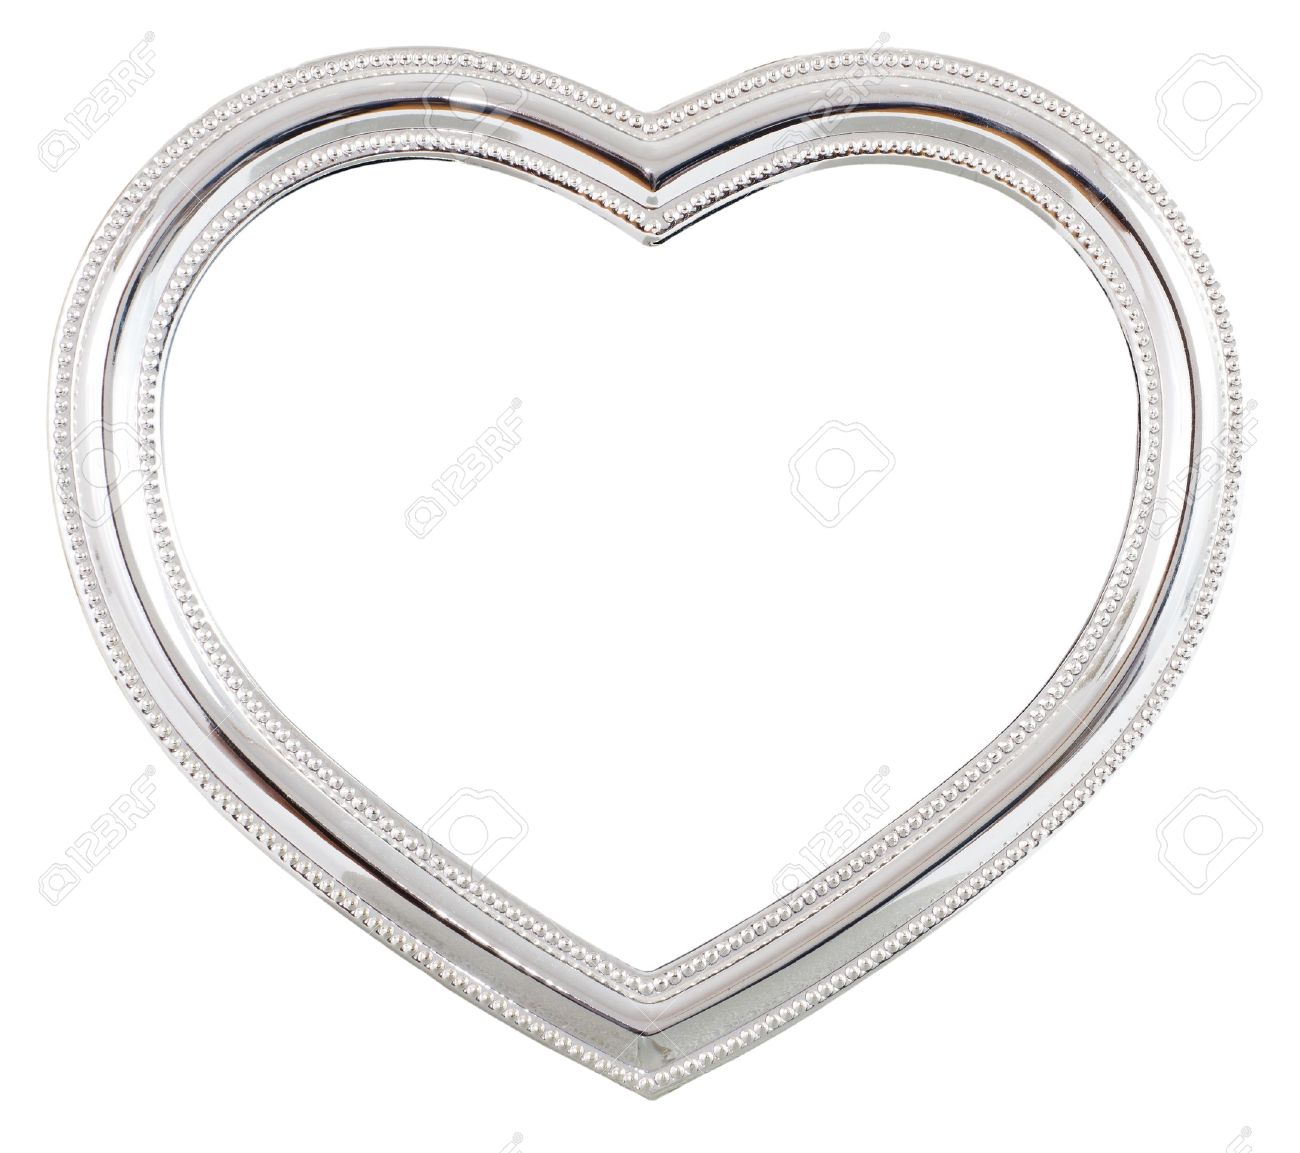 Silver Heart Shaped Picture Frame Over A White Background Stock ...